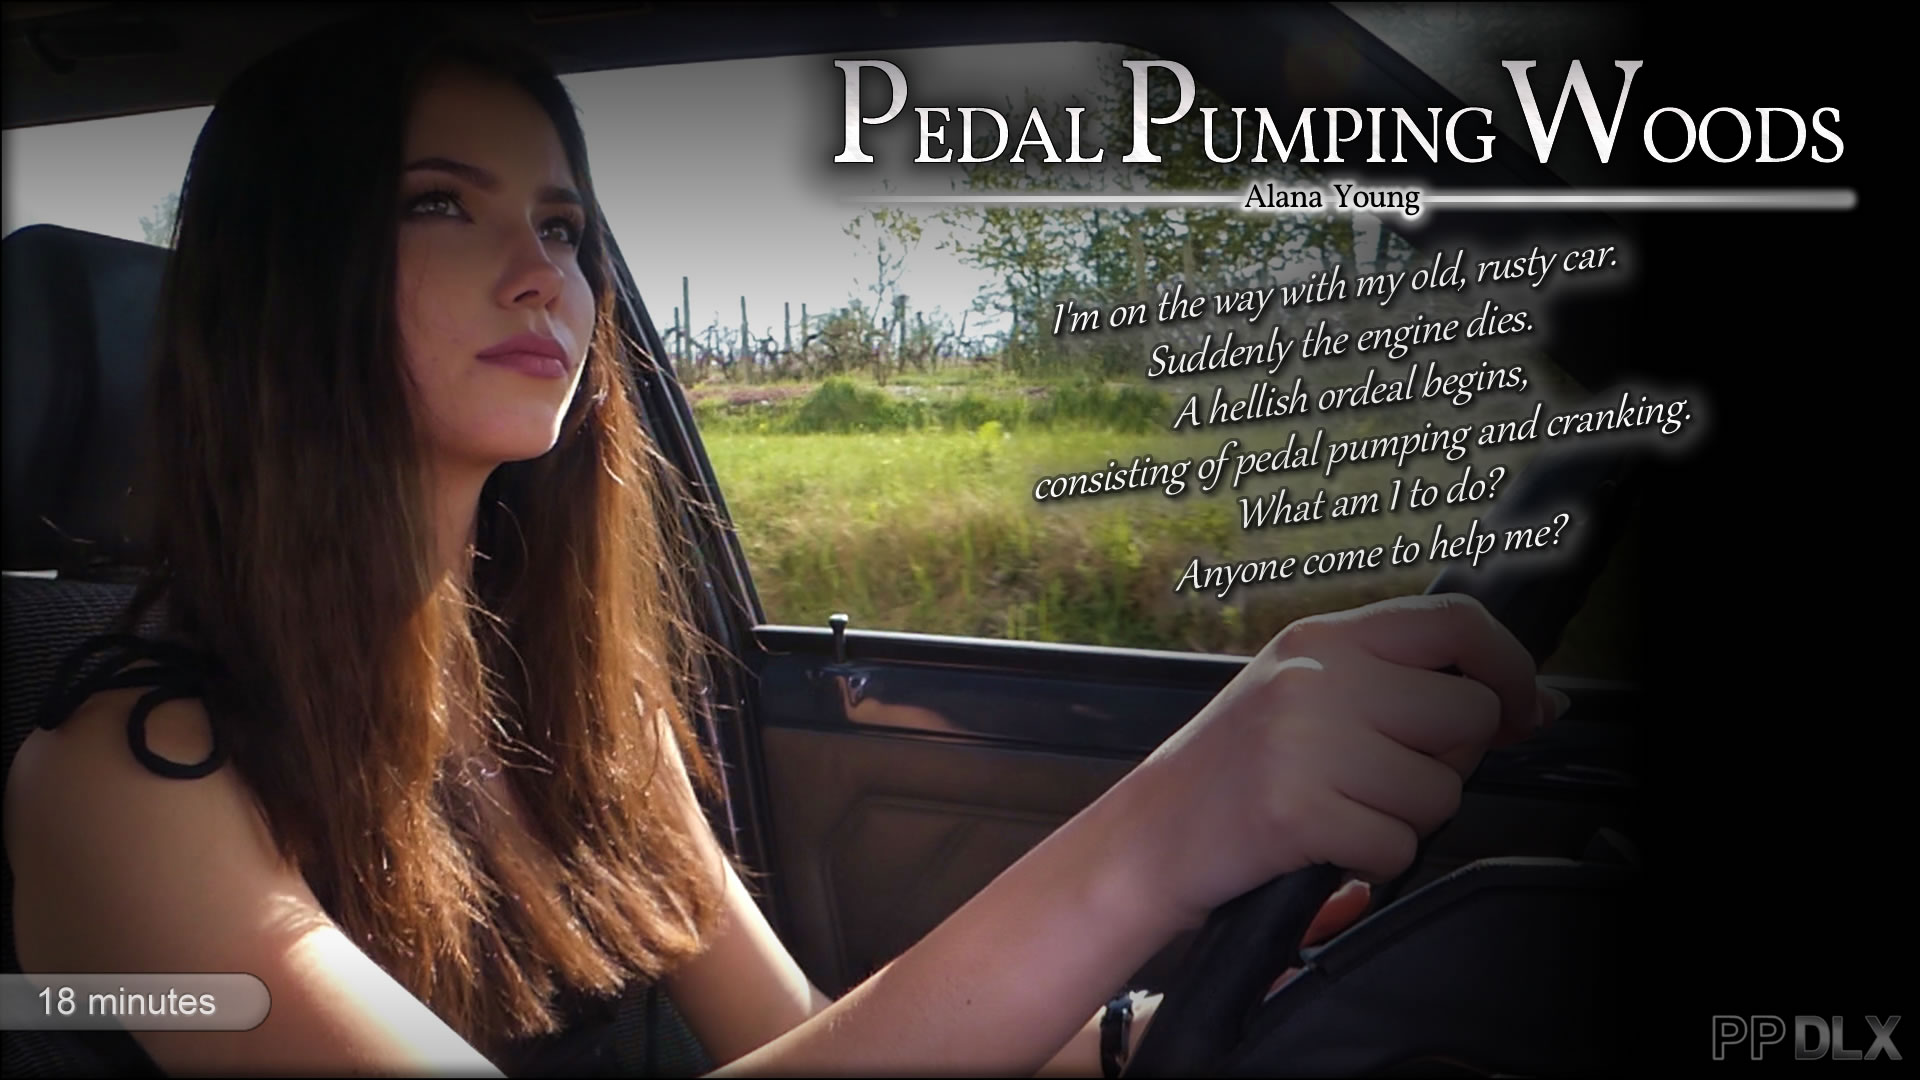 Car cranking and pedal pumping